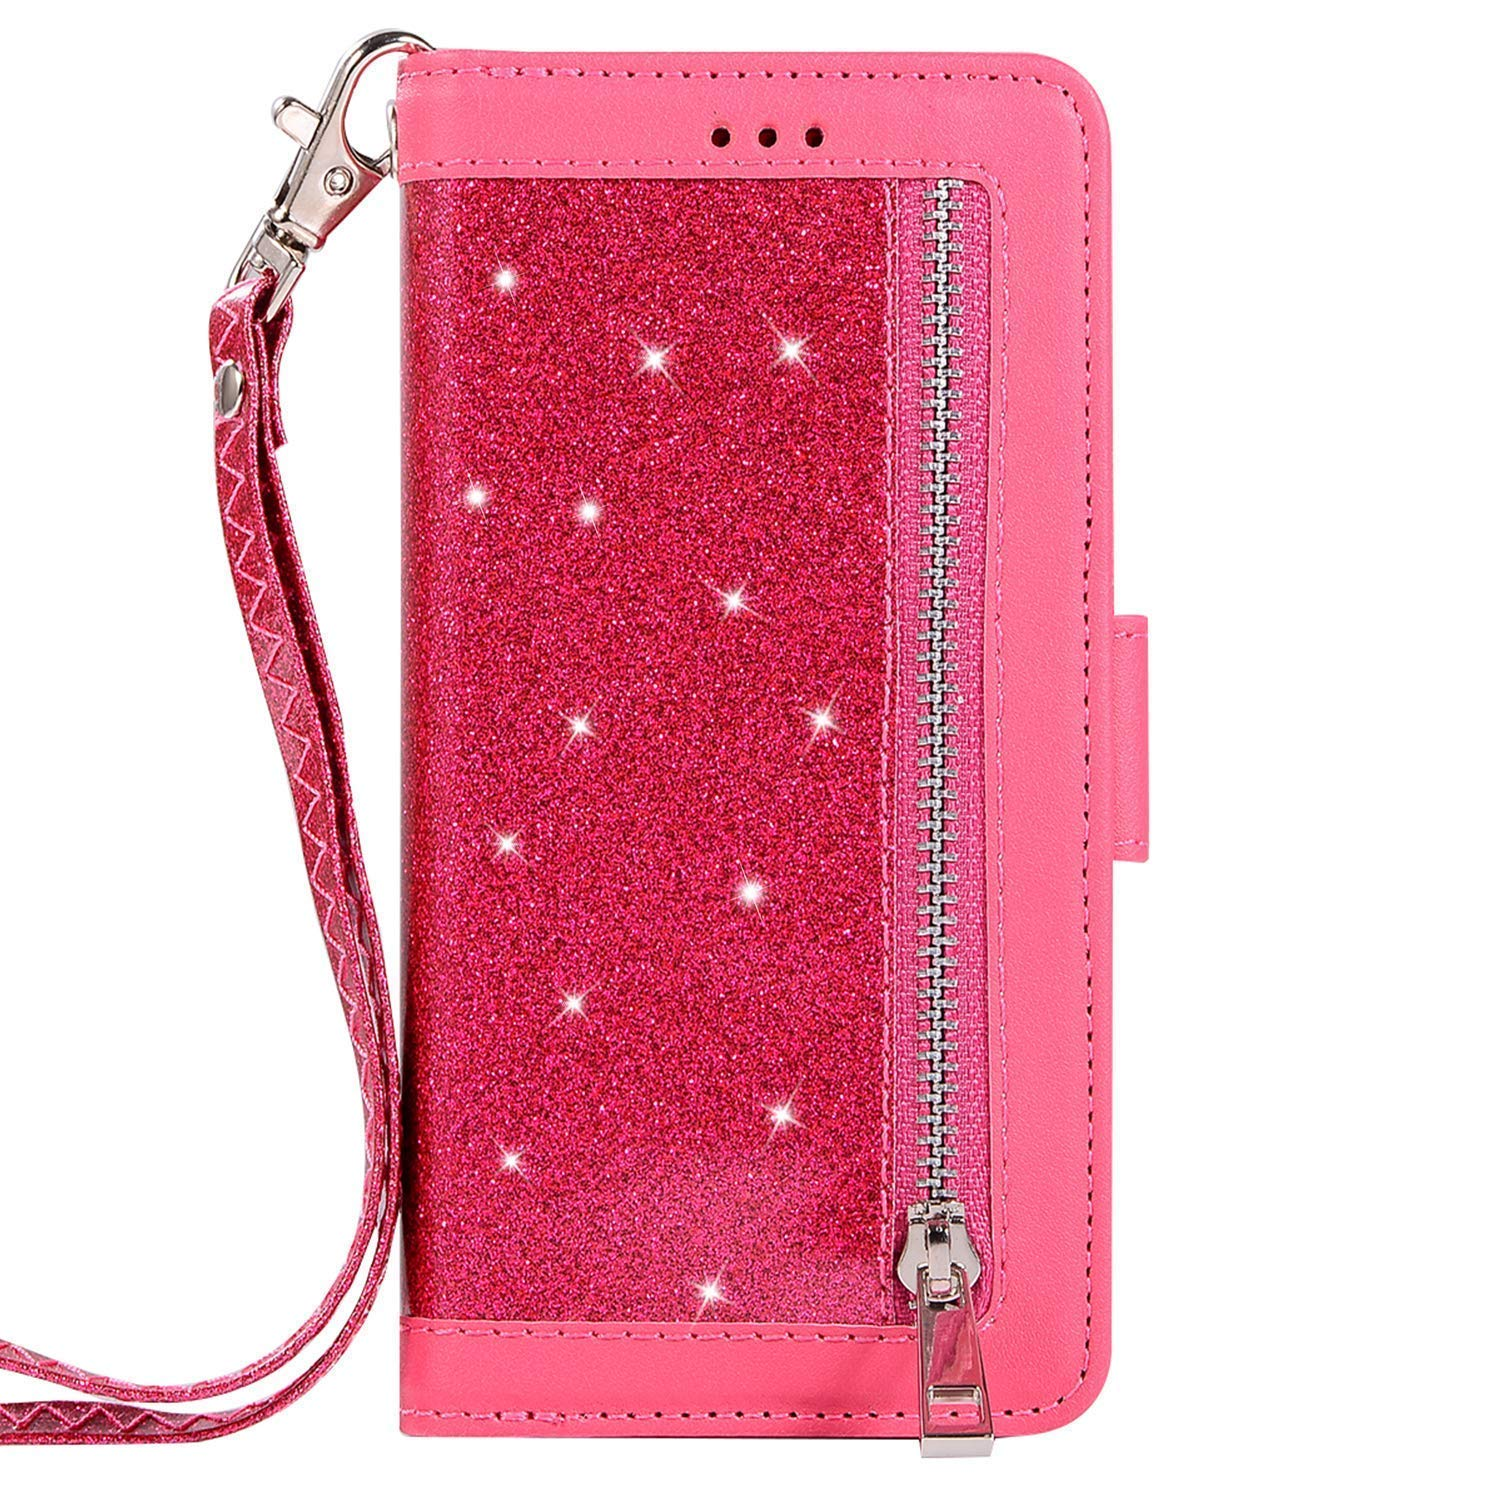 Herbests Compatible with Huawei Mate 10 Lite Wallet Case Luxury Bling Glitter Multi-Functional Zipper Leather Flip Cover 9 Credit Card Holders Magnetic Purse Cover with Wrist Strap,Rose Red by Herbests